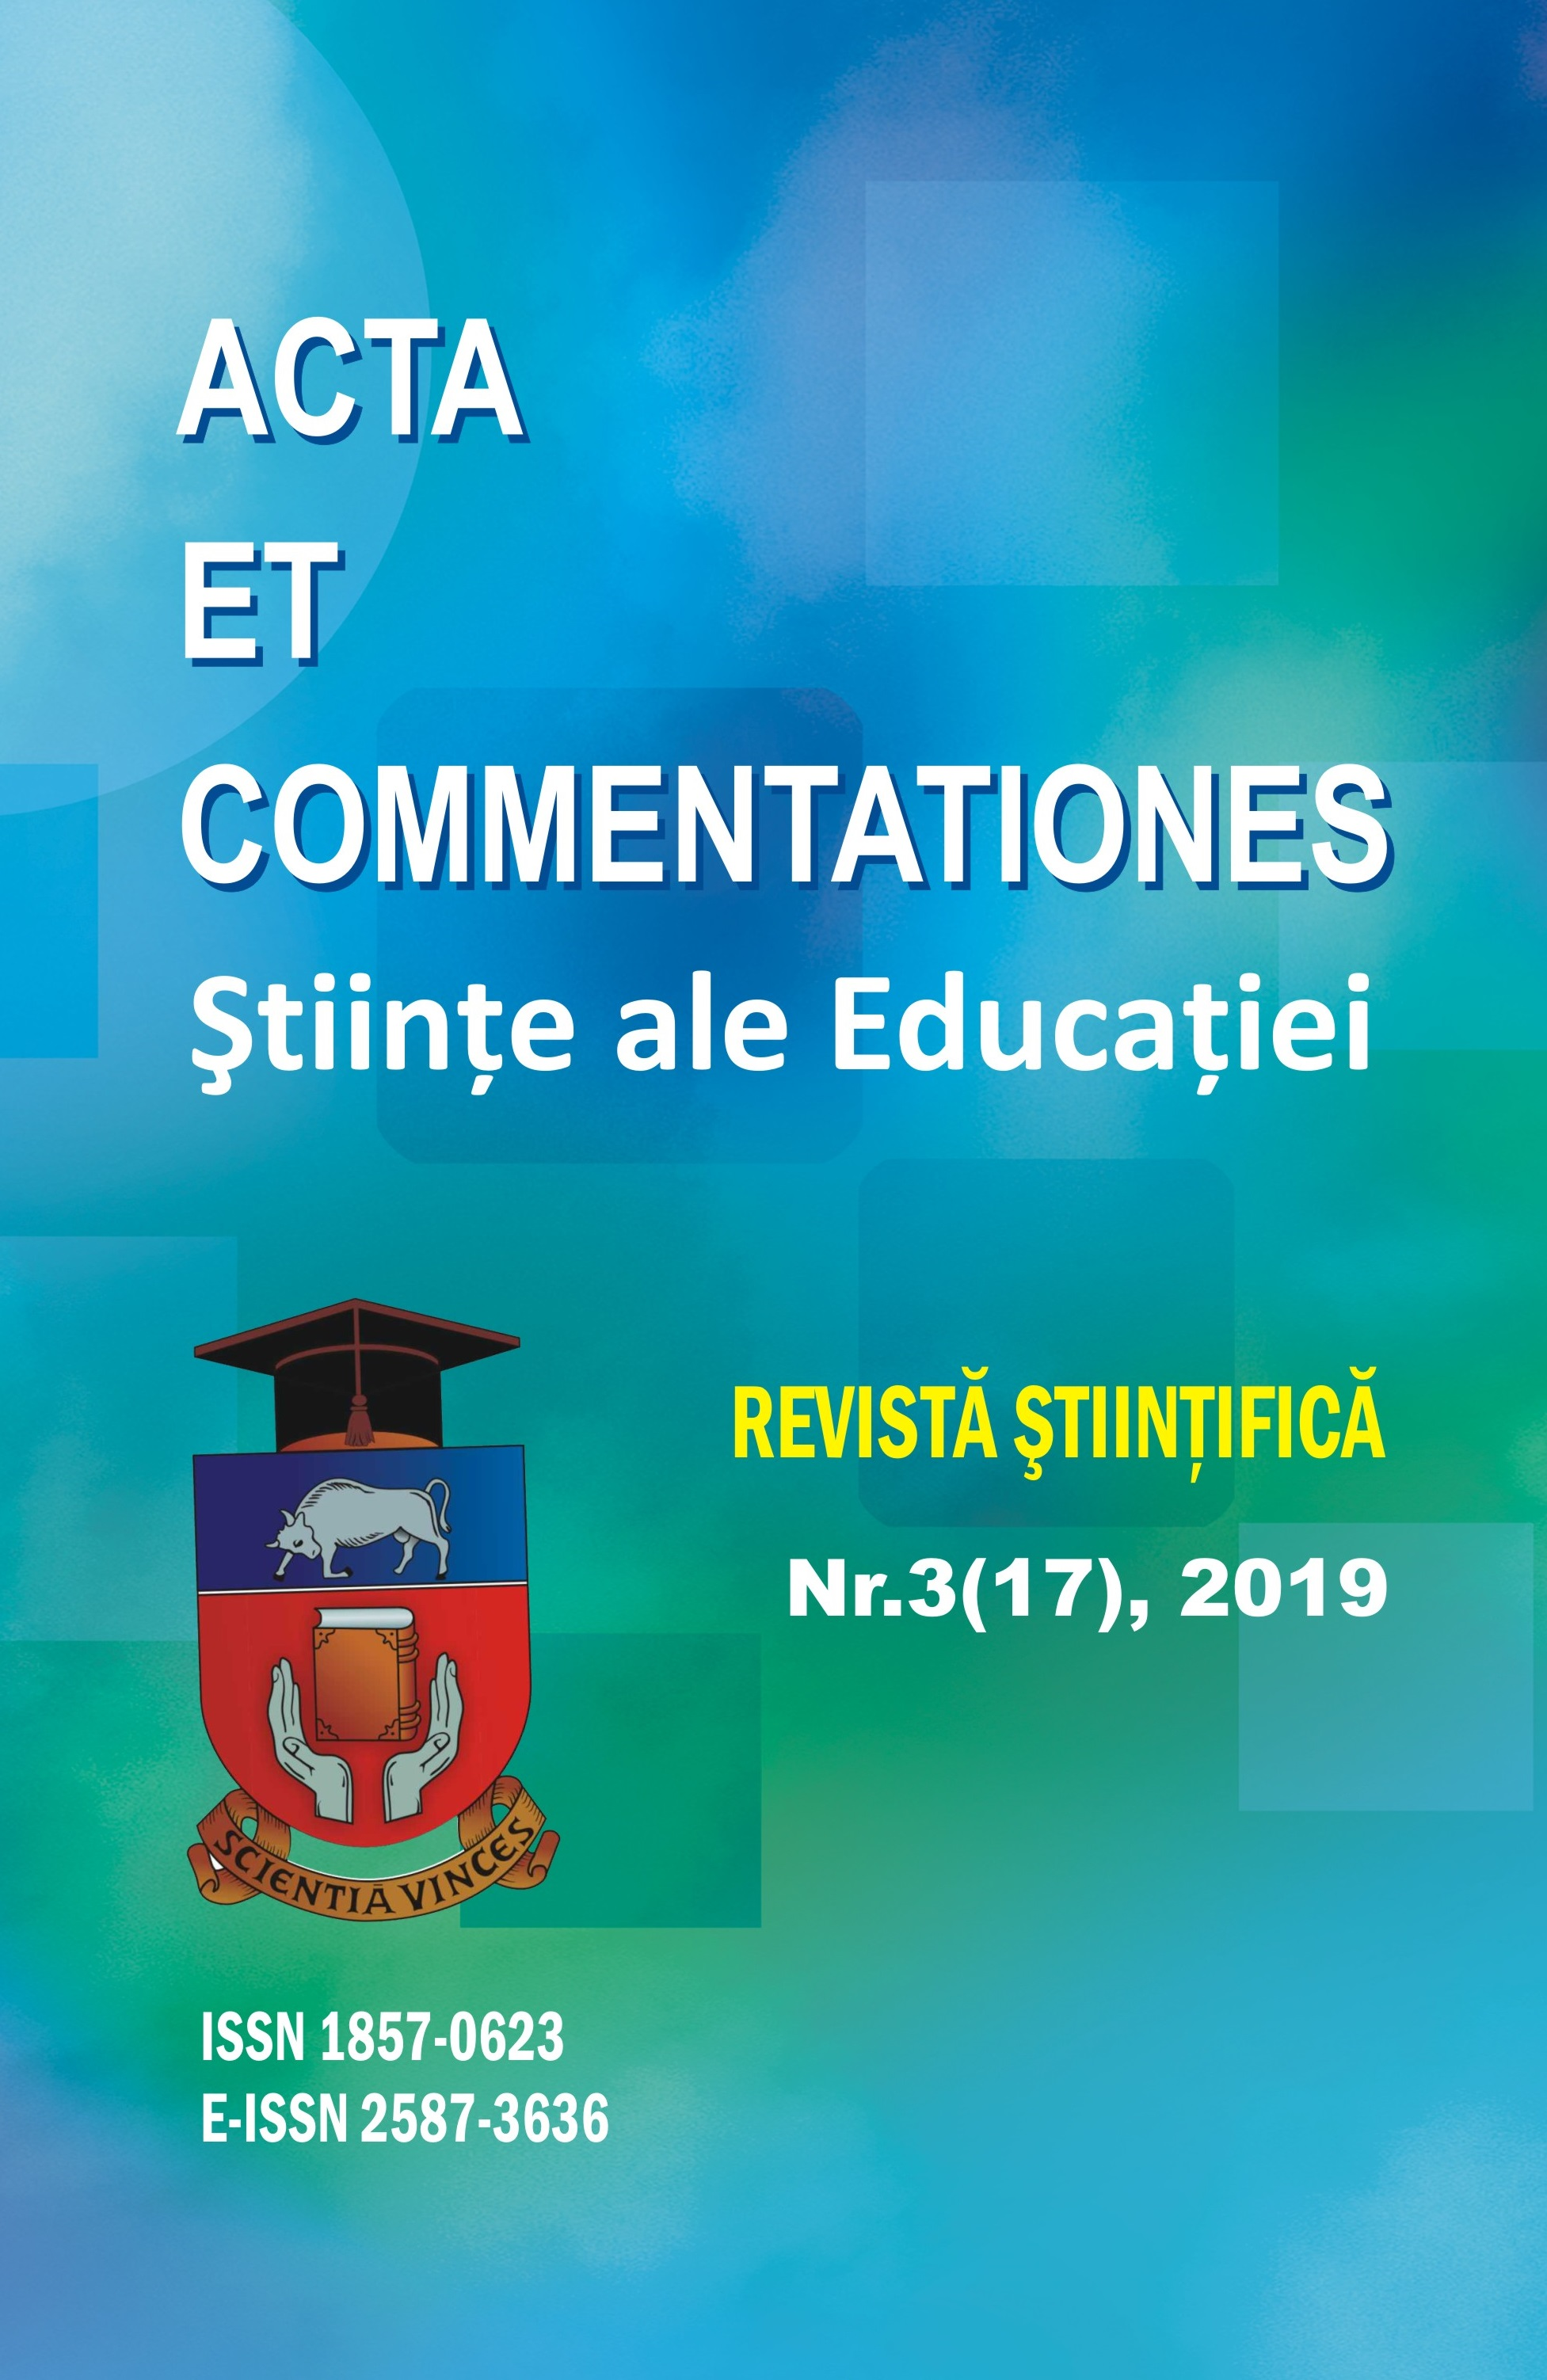 Acta et Commentationes Sciences of Education